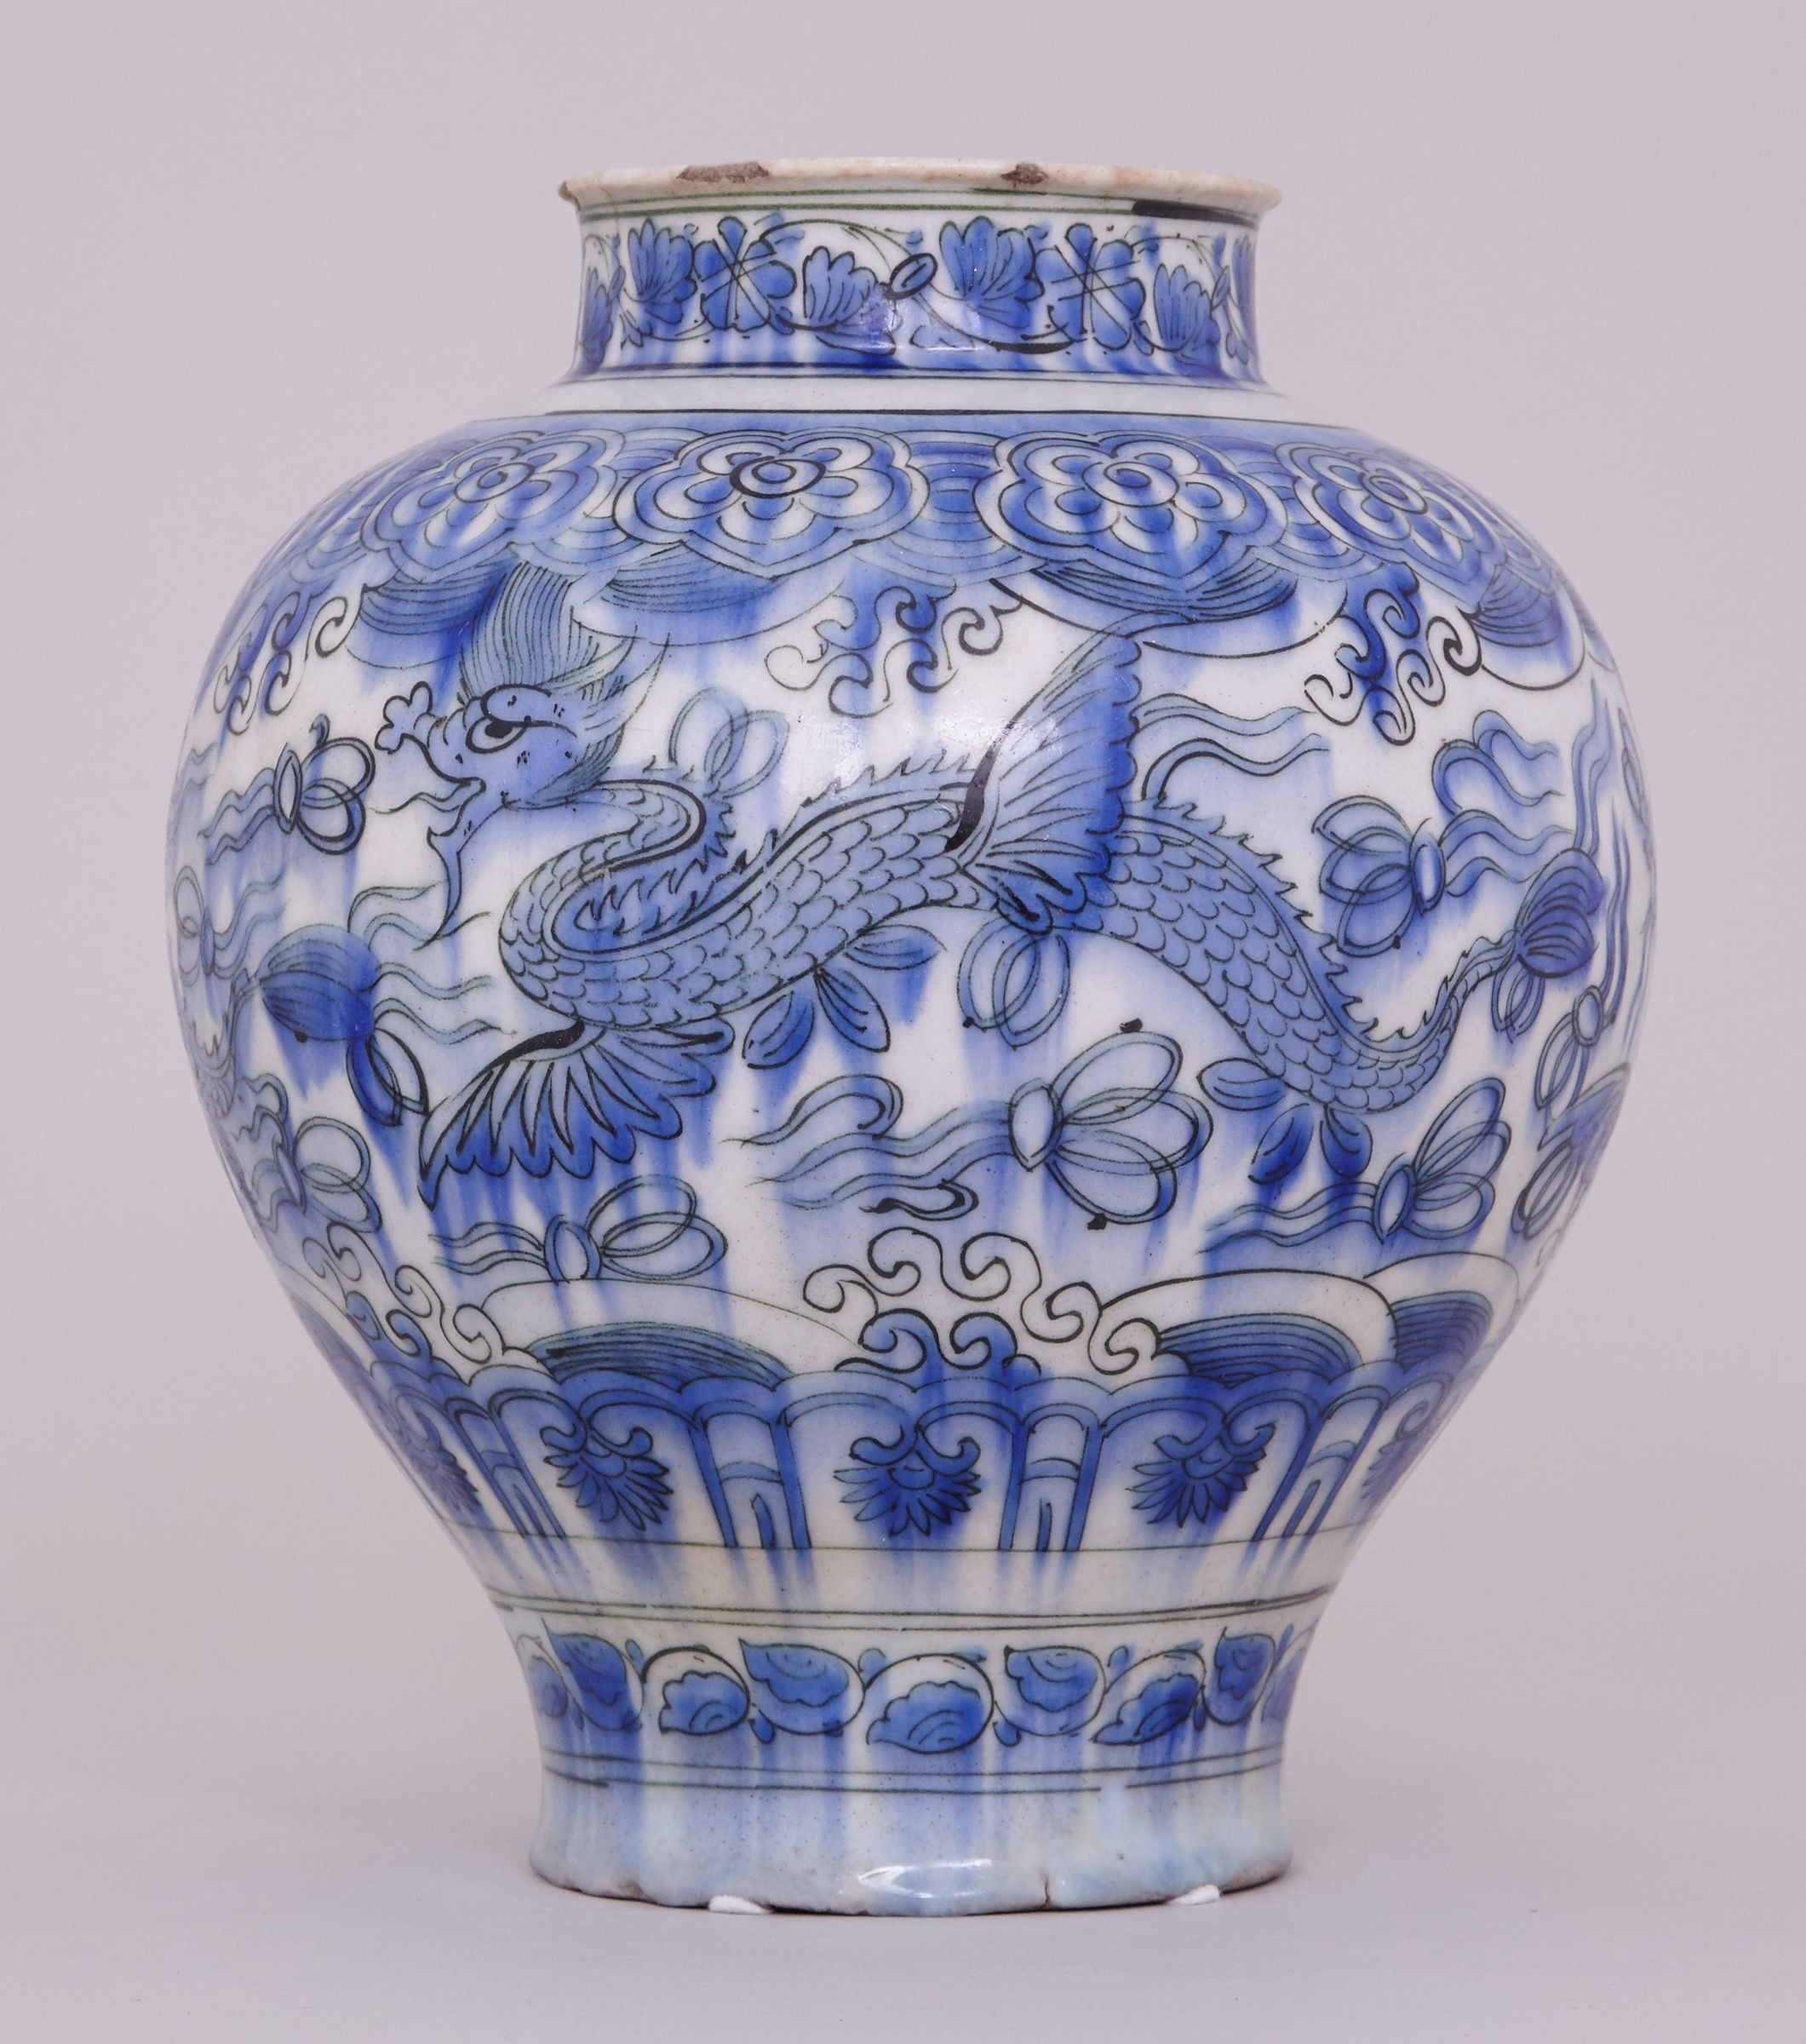 White Porcelain Vase Of White Pottery Vase Elegant A Blue and White Persian Safavid Jar 17th Inside White Pottery Vase Elegant A Blue and White Persian Safavid Jar 17th Century